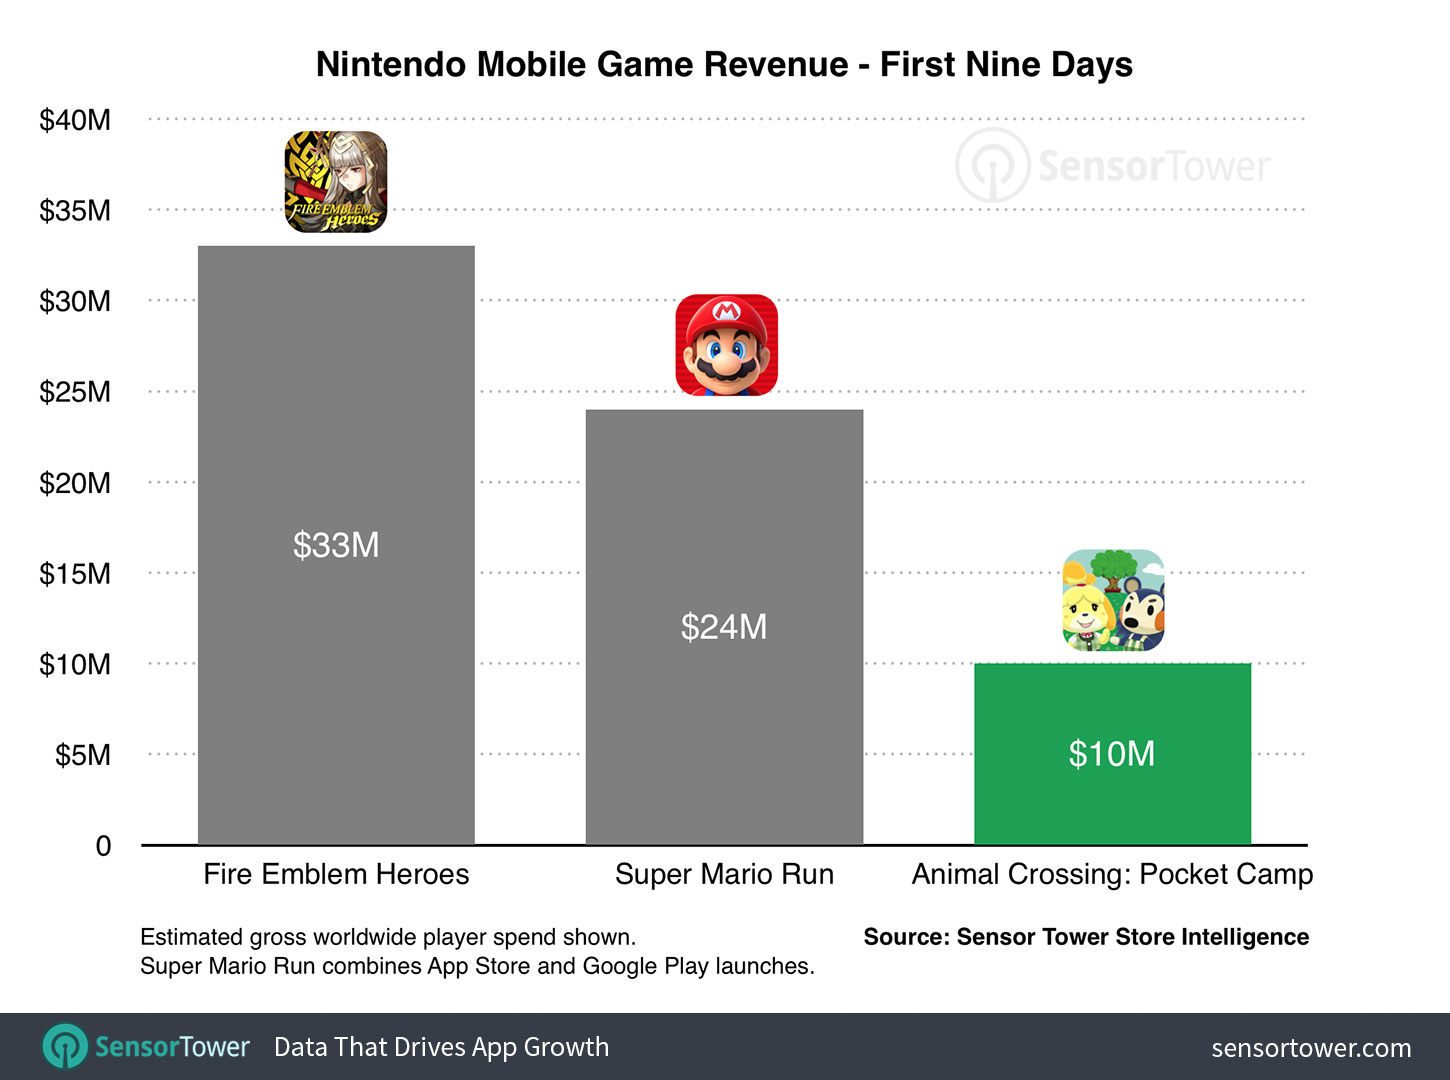 First nine days revenue of Animal Crossing: Pocket Camp compared to Super Mario Run and Fire Emblem Heroes